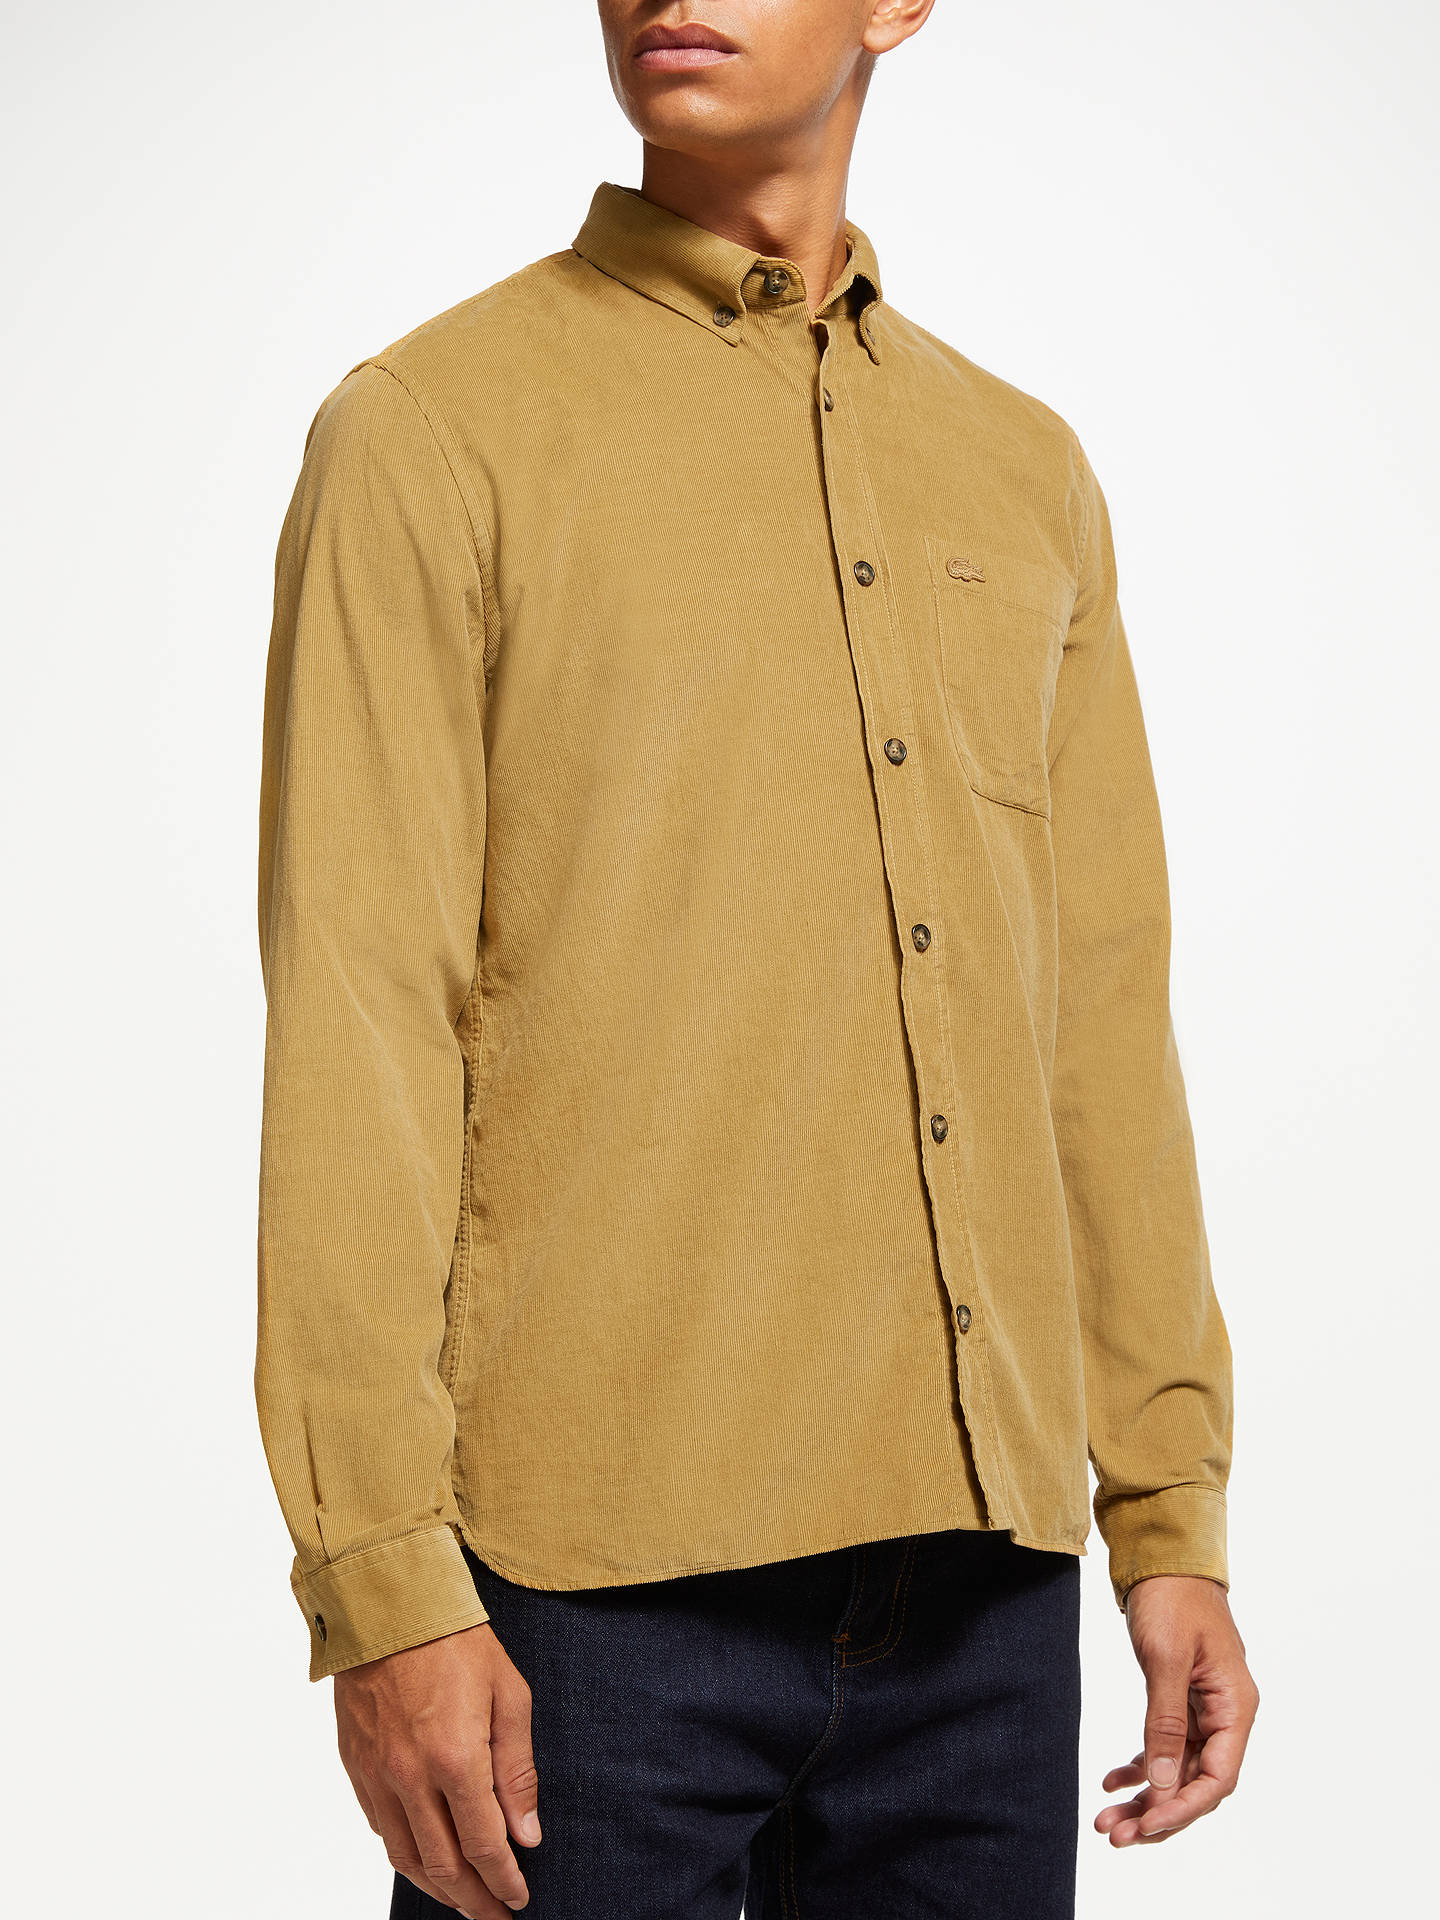 efcf8cc549 Buy Lacoste Corduroy Long Sleeve Shirt, Yellow, M Online at johnlewis.com  ...